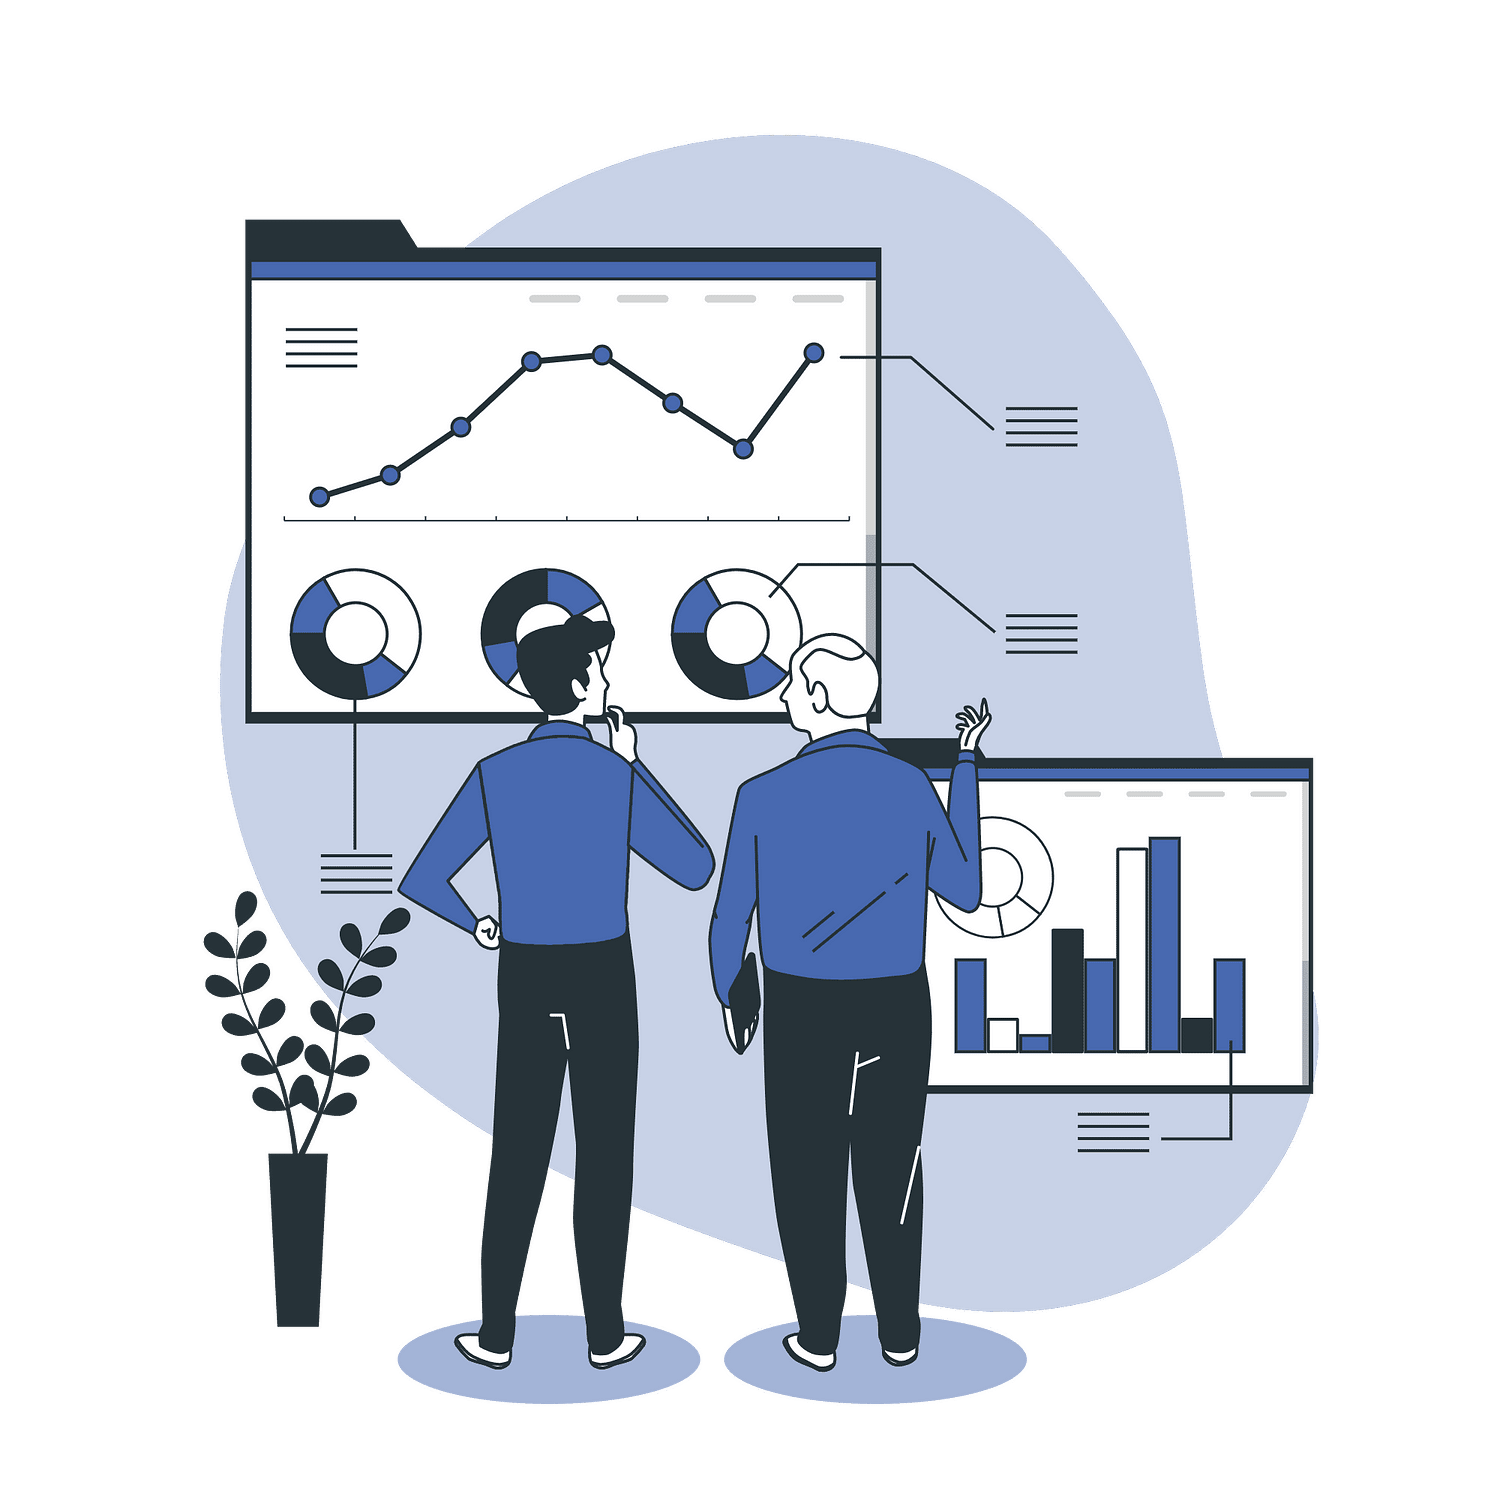 Reporting and Analytics vector illustration